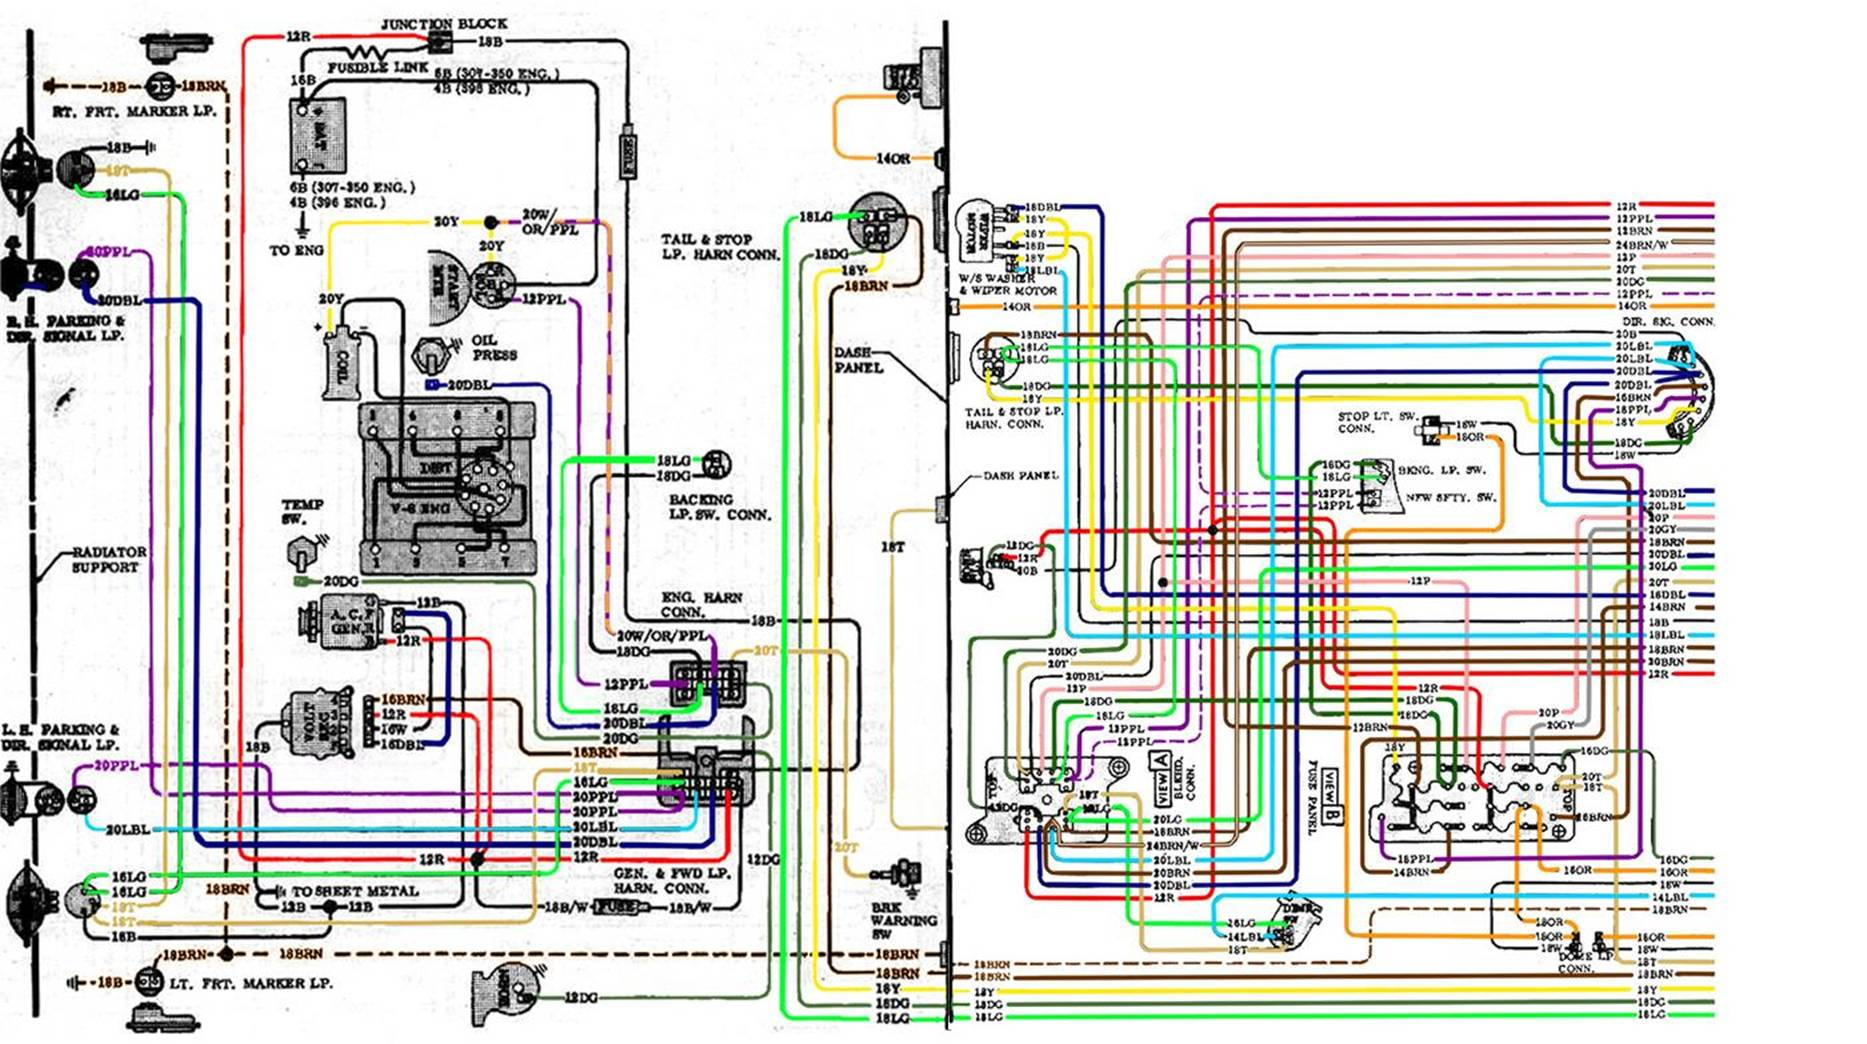 1967 chevelle wiring harness diagram